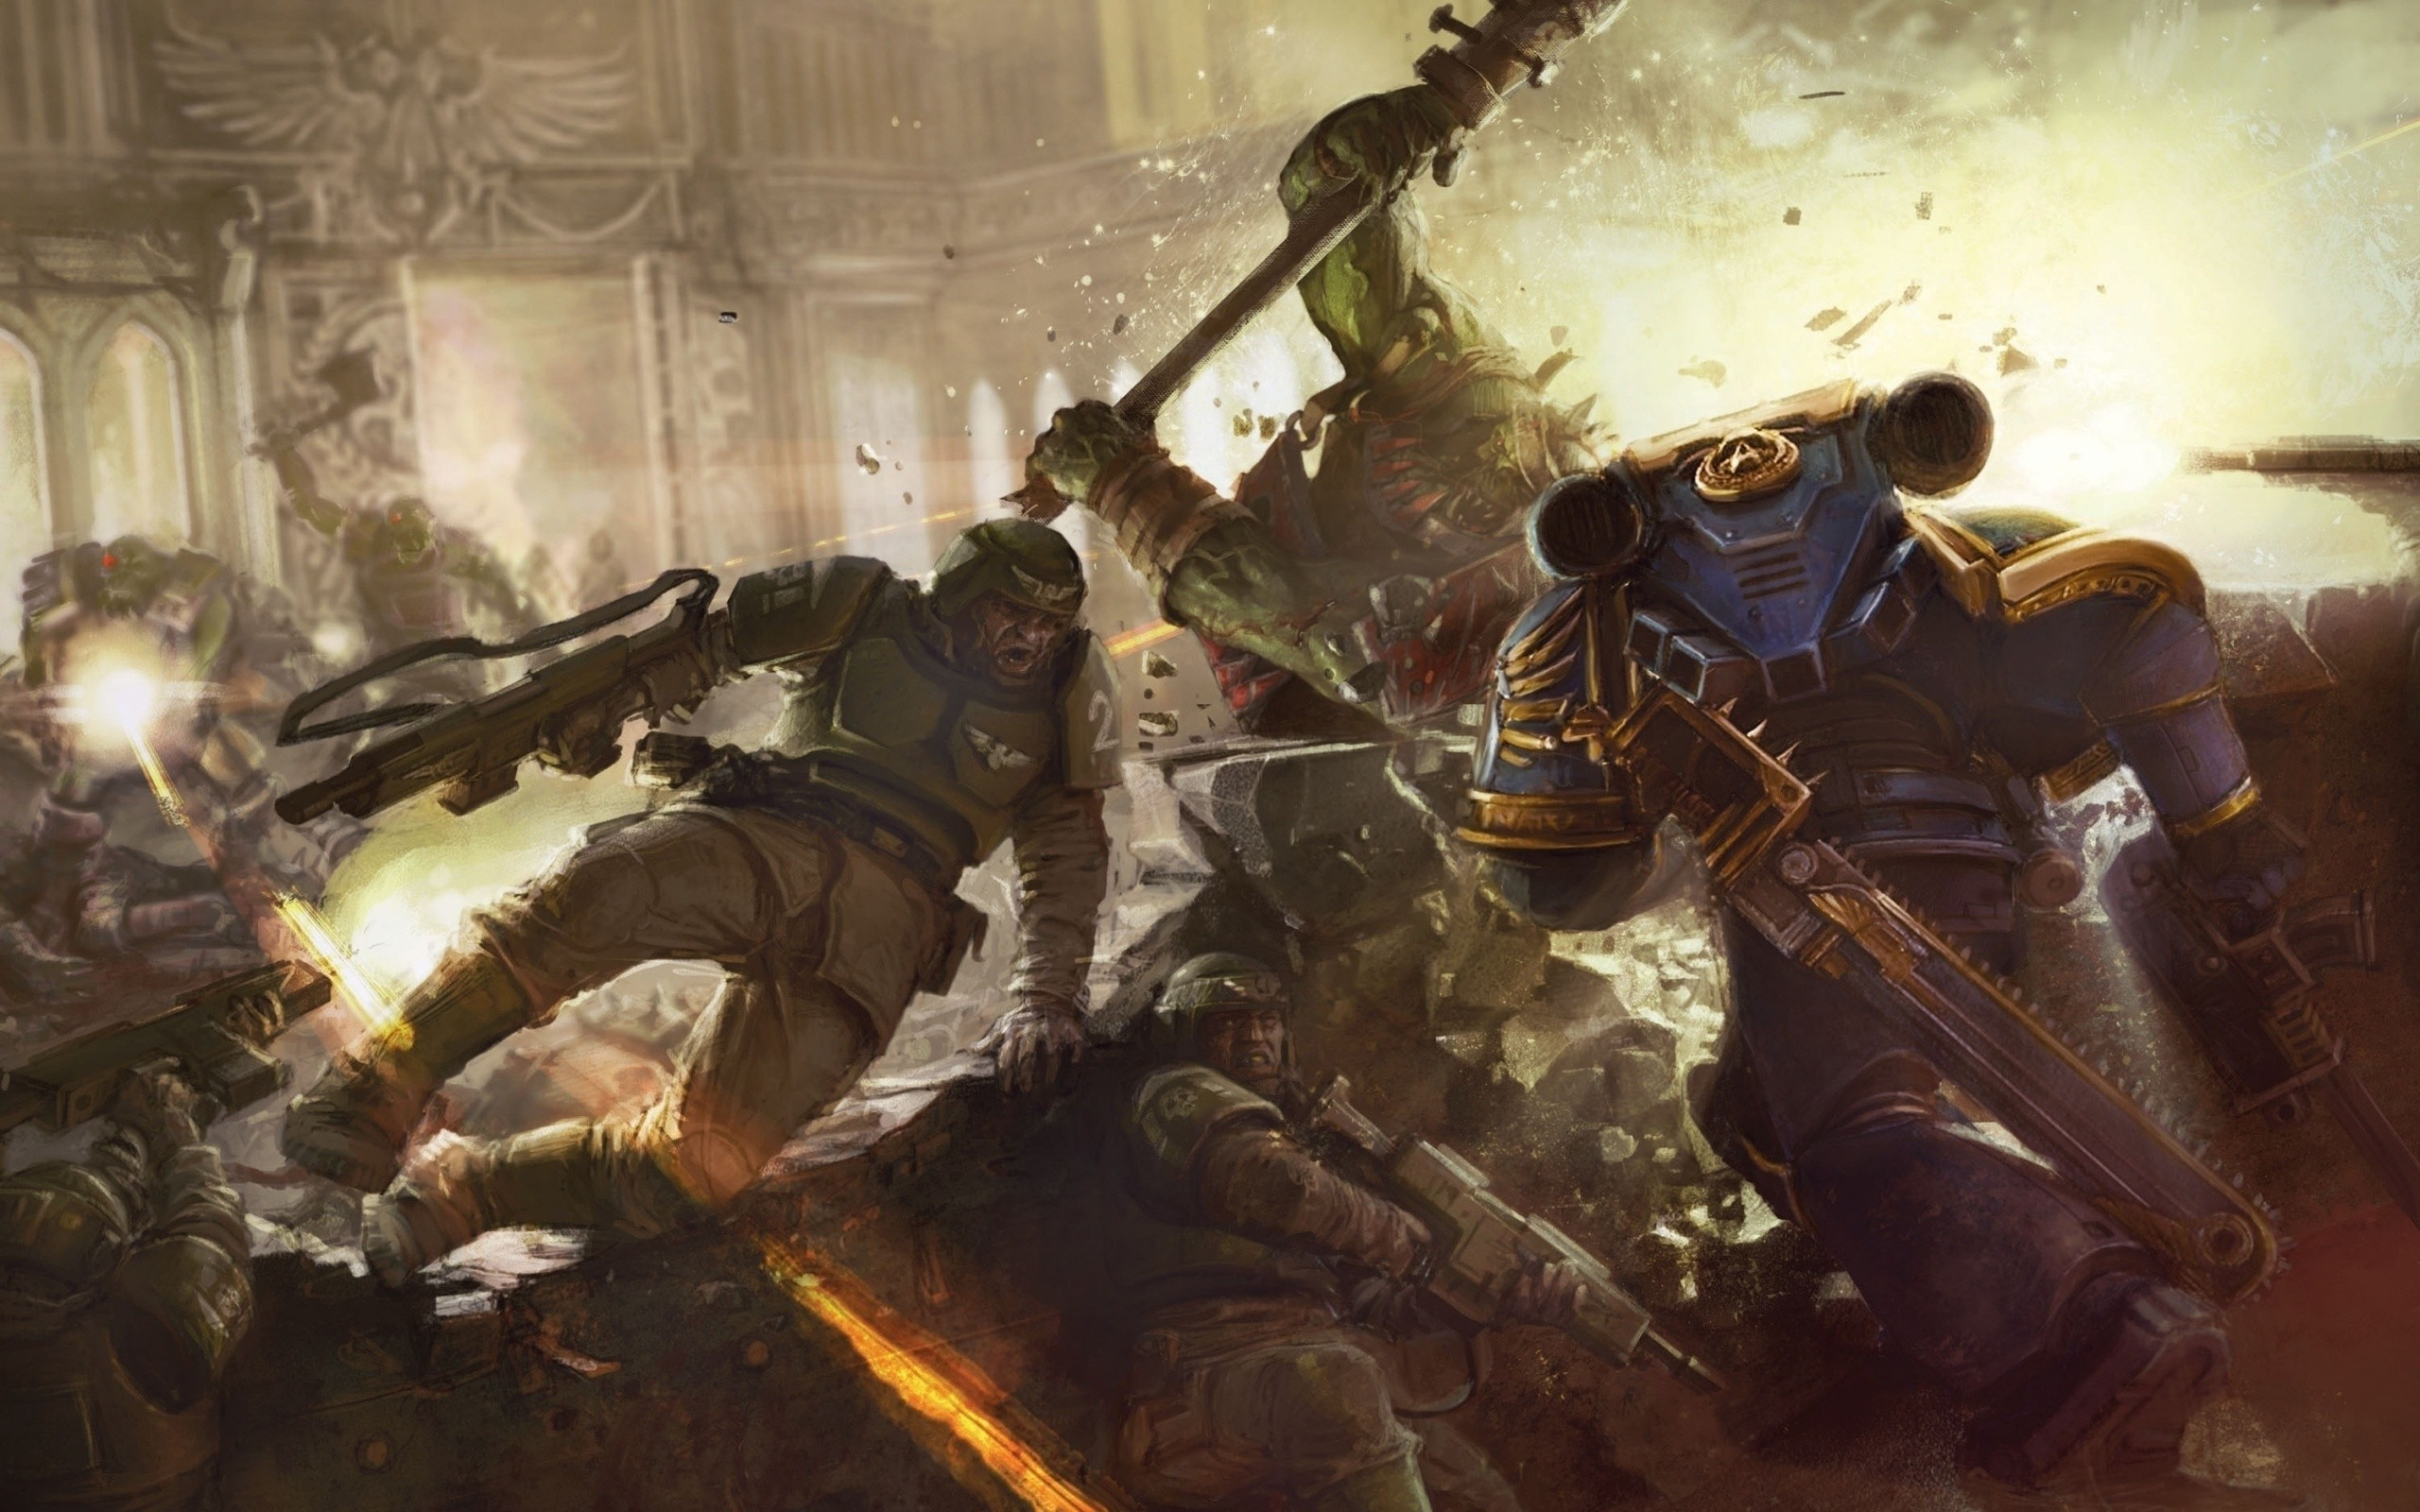 2560x1600 Space Marines And Imperial Guard Vs Orks wallpaper